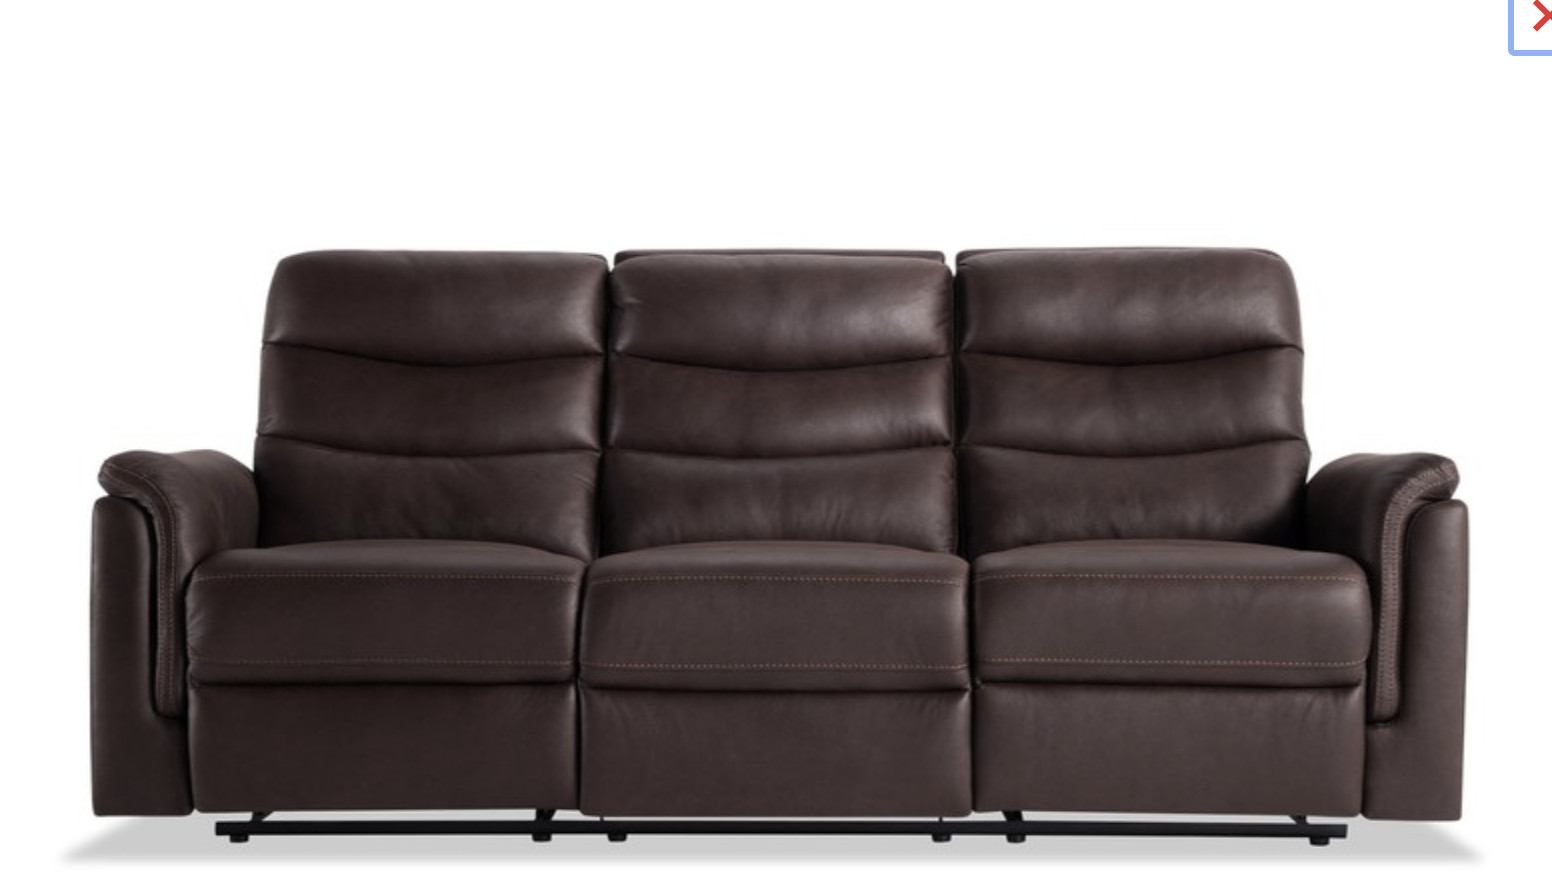 Bob's Brown Leather Reclining Sofa